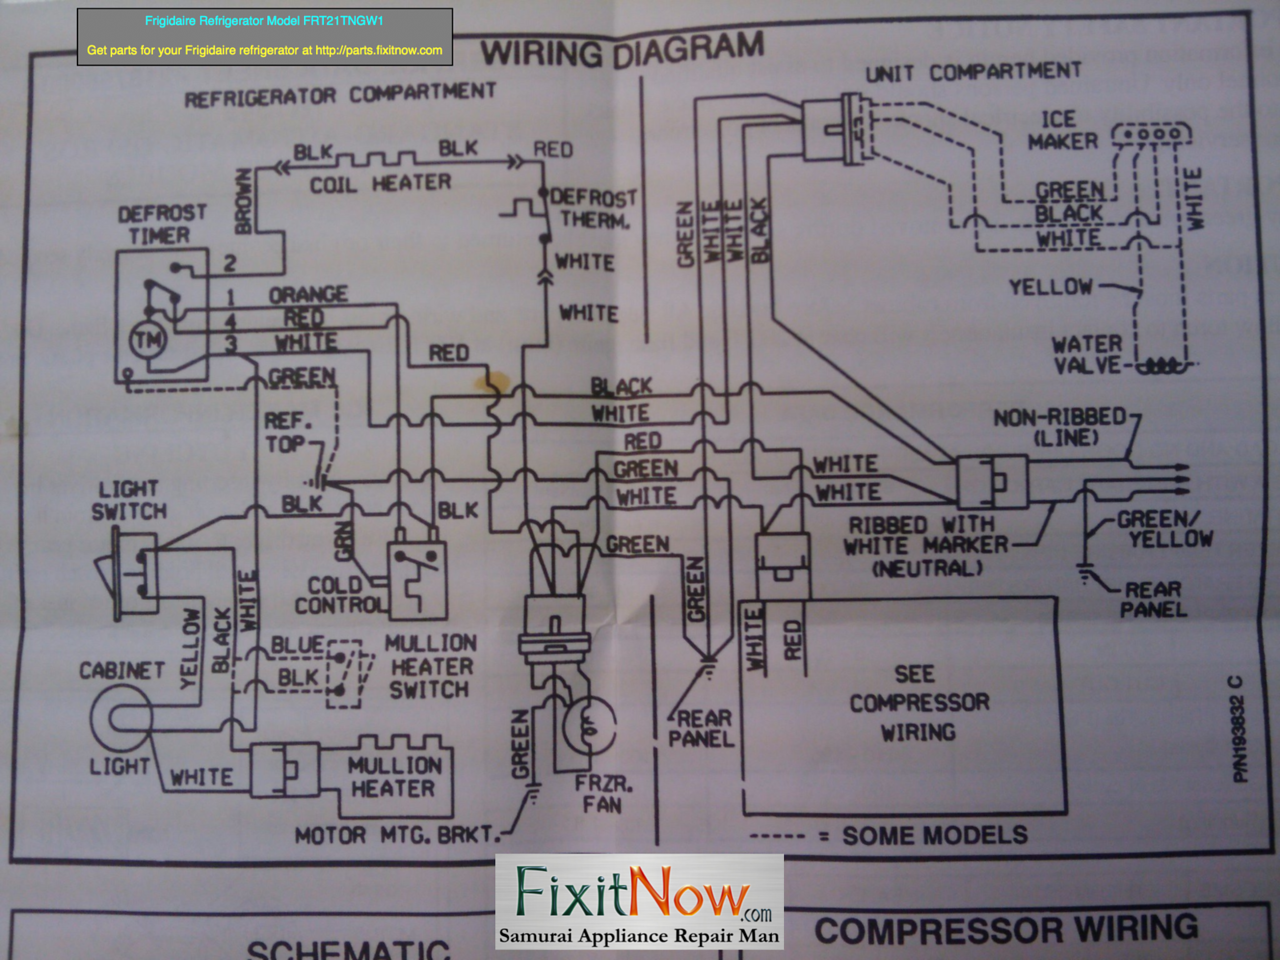 wiring diagrams and schematics appliantology rh appliantology smugmug com  appliance wiring diagram symbols